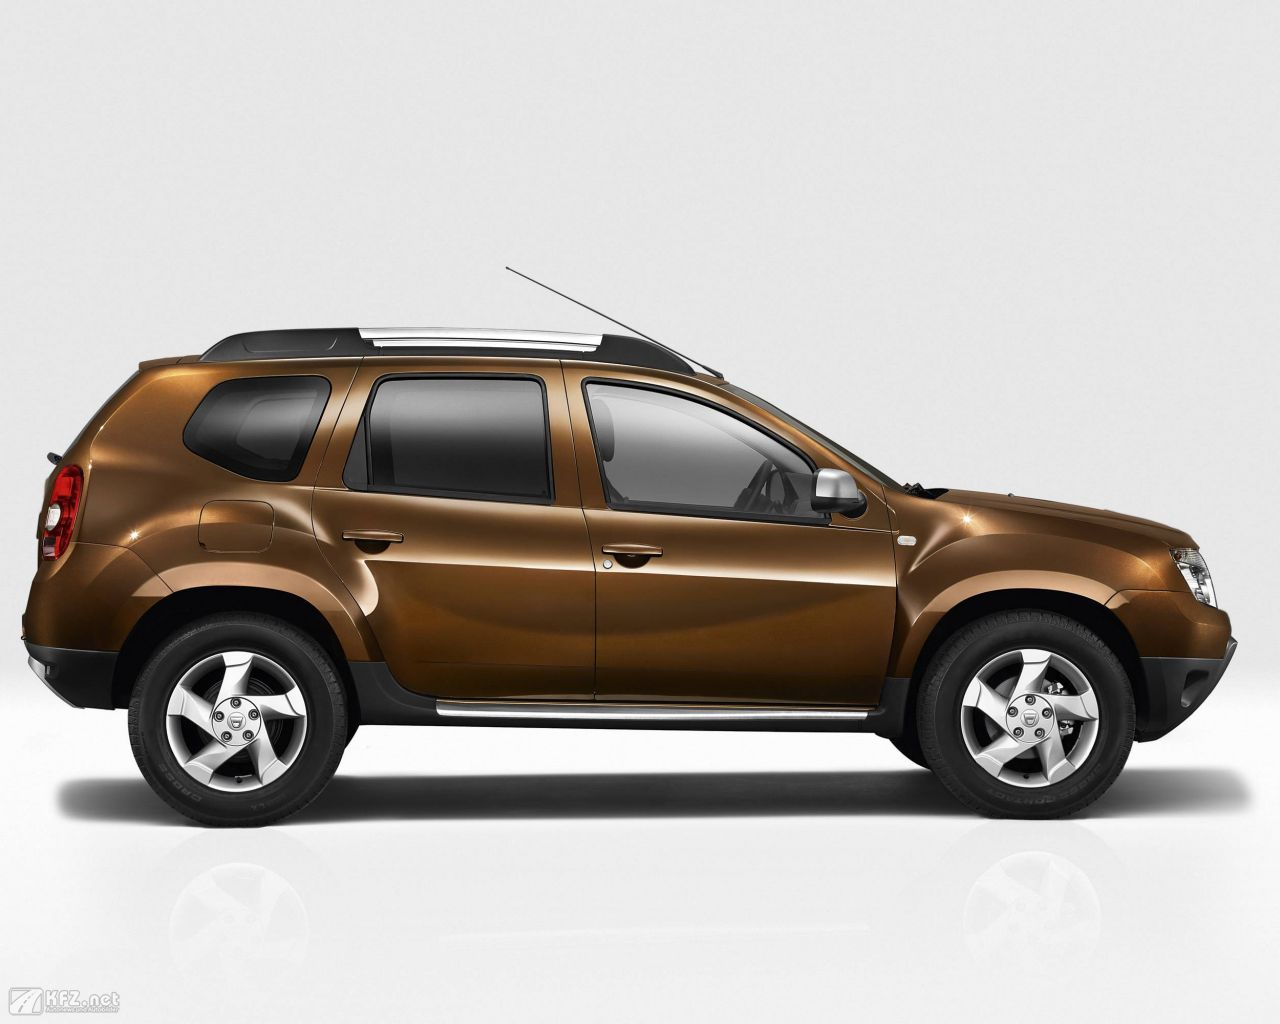 dacia duster bilder der g nstige suv. Black Bedroom Furniture Sets. Home Design Ideas